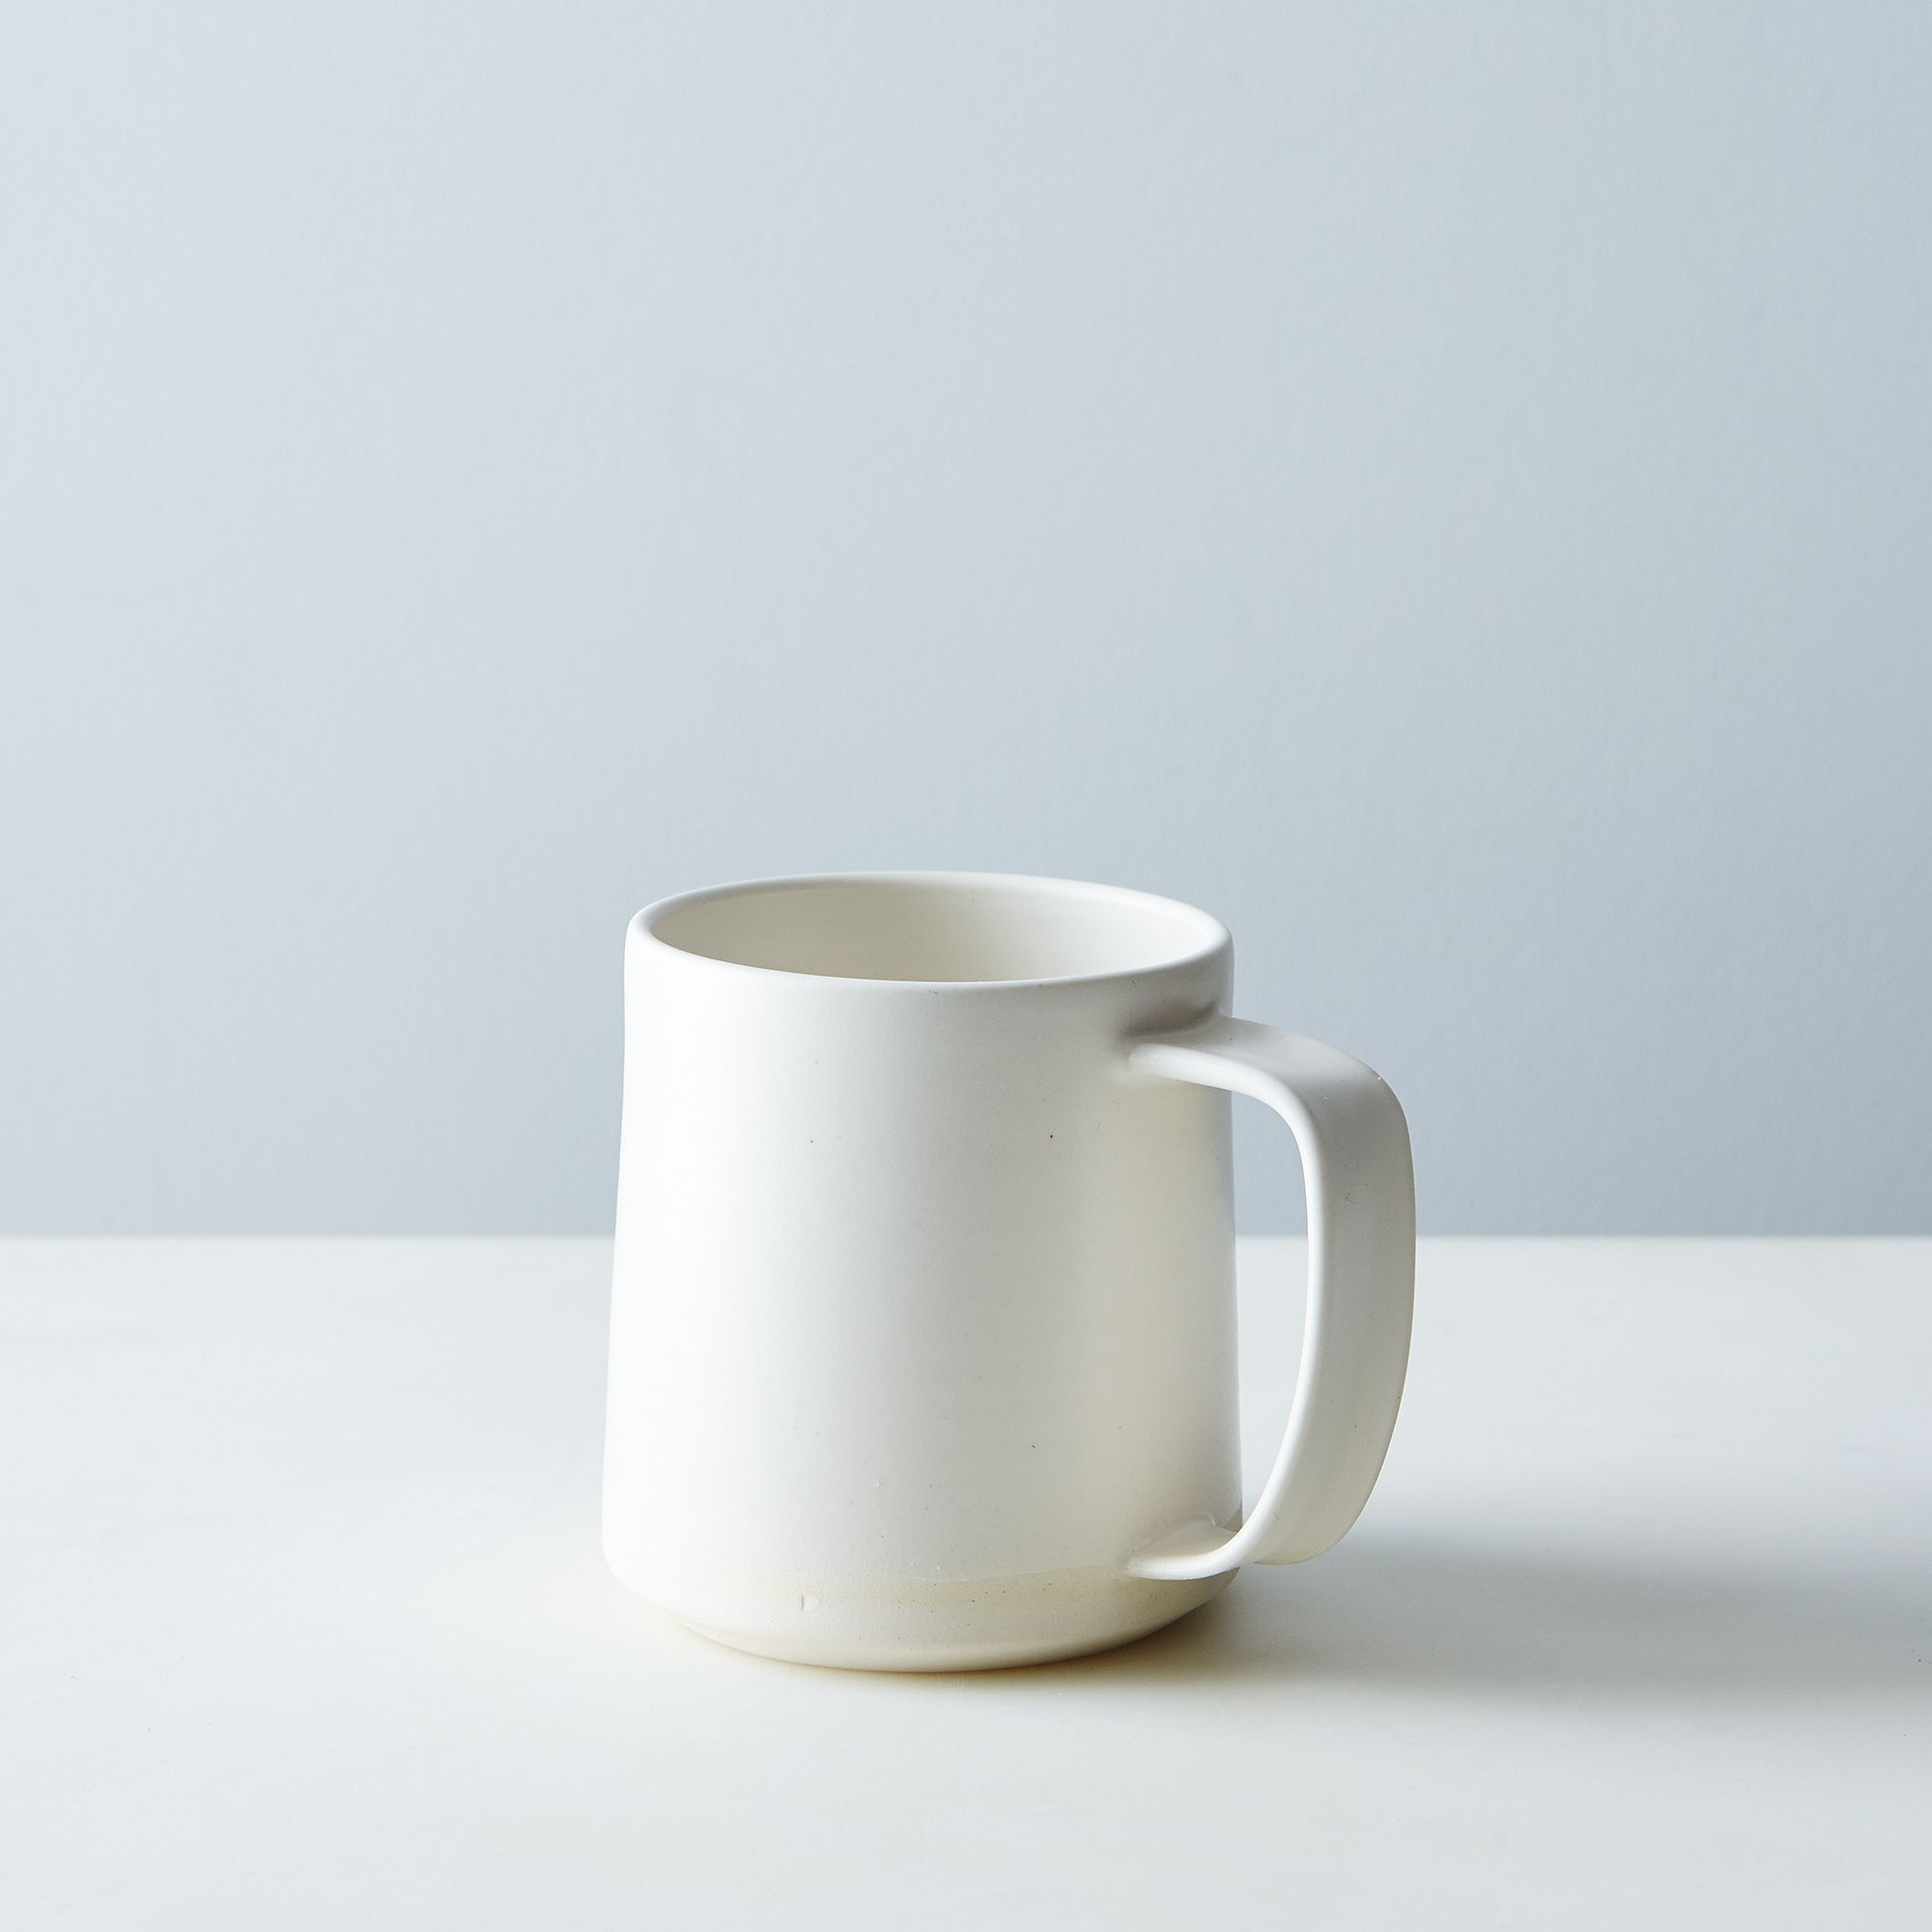 1360489b 49bb 4d6e 9d19 008dbcde0cd0  2015 0204 paper clay danish mug mark weinberg silo 019